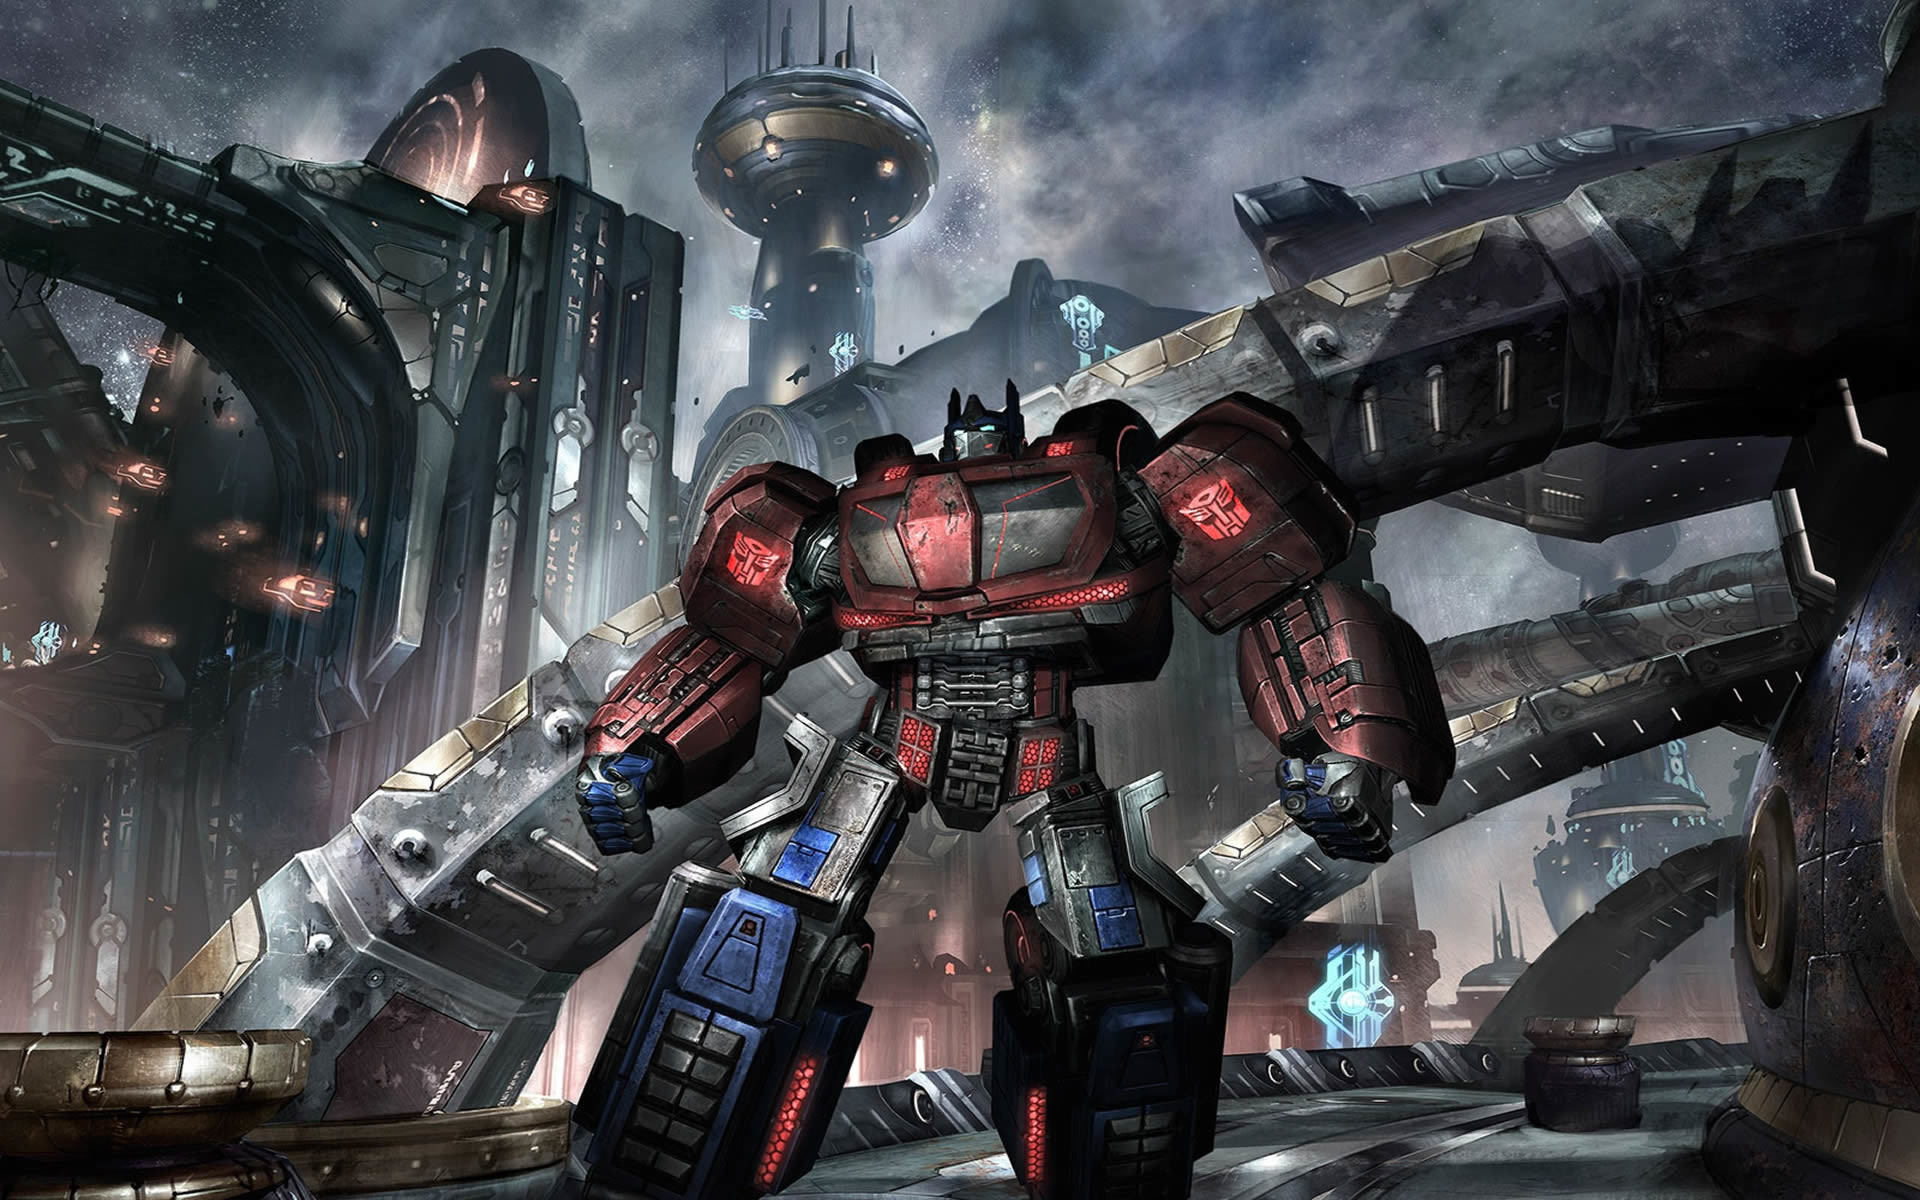 Res: 1920x1200, previous transformers war for cybertron wallpaper. Autobot In The City